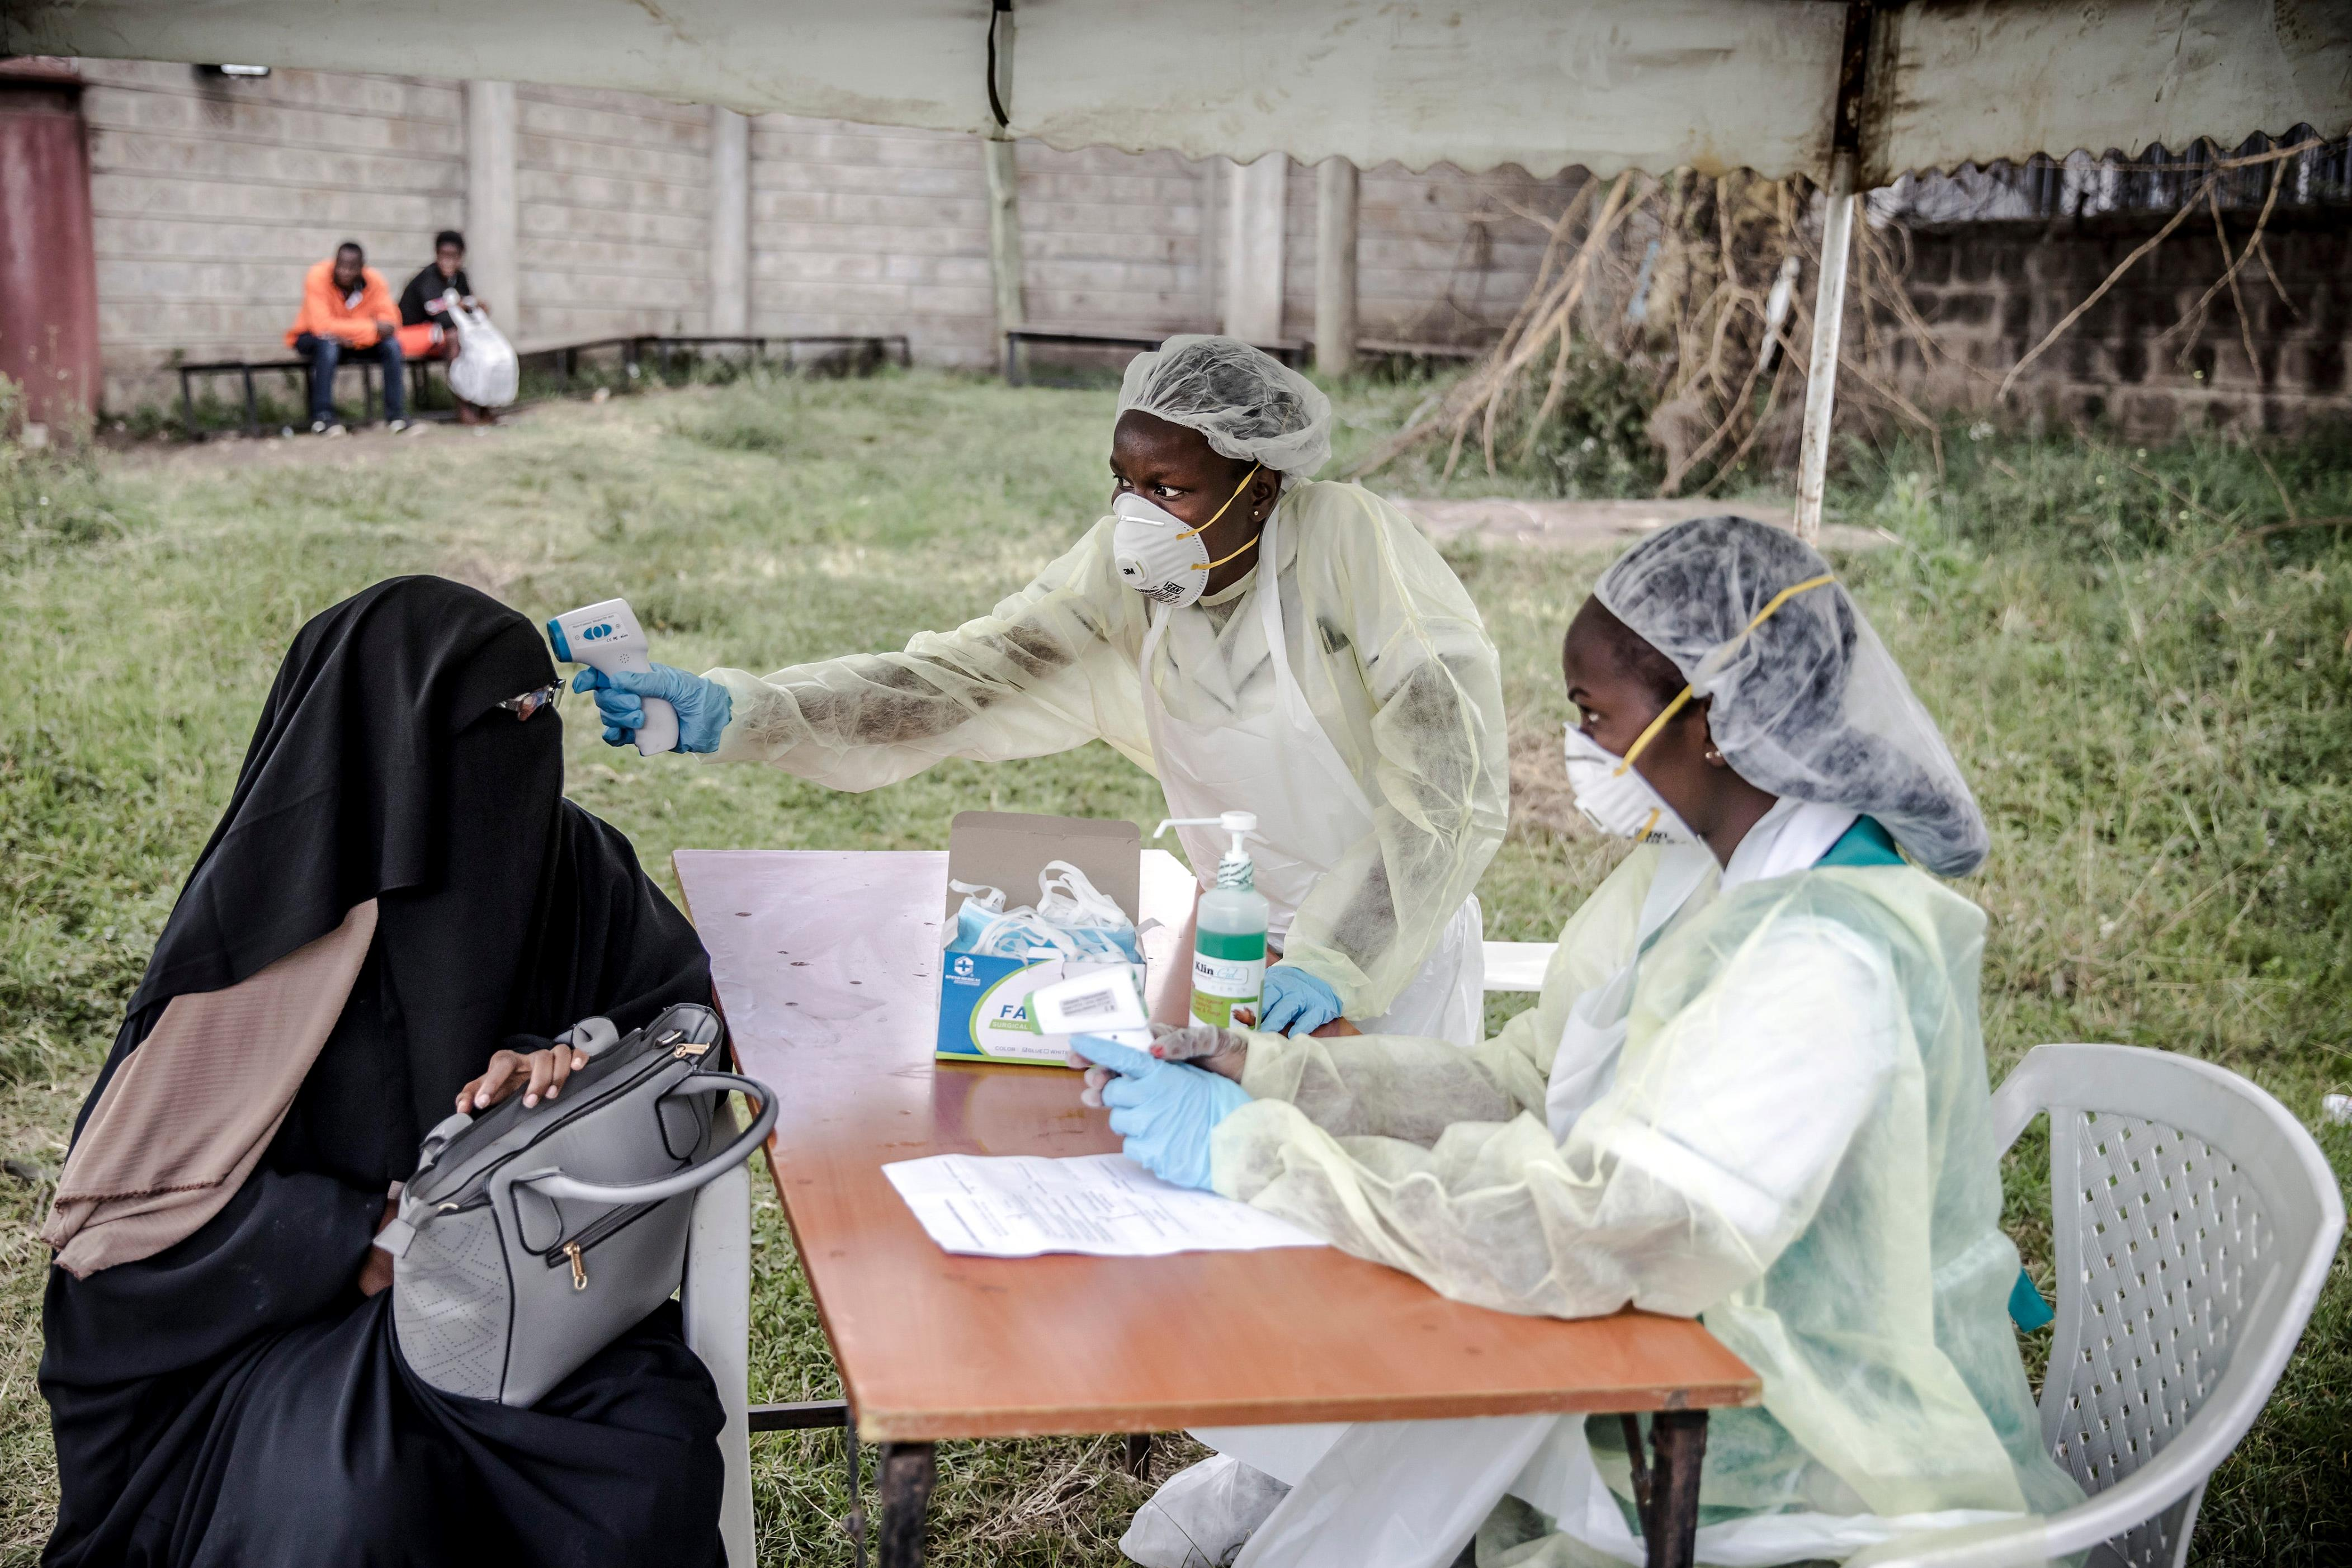 Slide 46 of 113: Health personnel measure the temperature of a visitor at the entrance of the Mbagathi Hospital in Nairobi, Kenya on March 18, 2020. The Government of Kenya confirmed new positive cases of COVID-19 coronavirus on March 18, 2020, bringing the total official number of cases in the East African country to 7. African countries have been among the last to be hit by the global COVID-19 coronavirus epidemic but as cases rise, many nations are now taking strict measures to block the deadly illness.